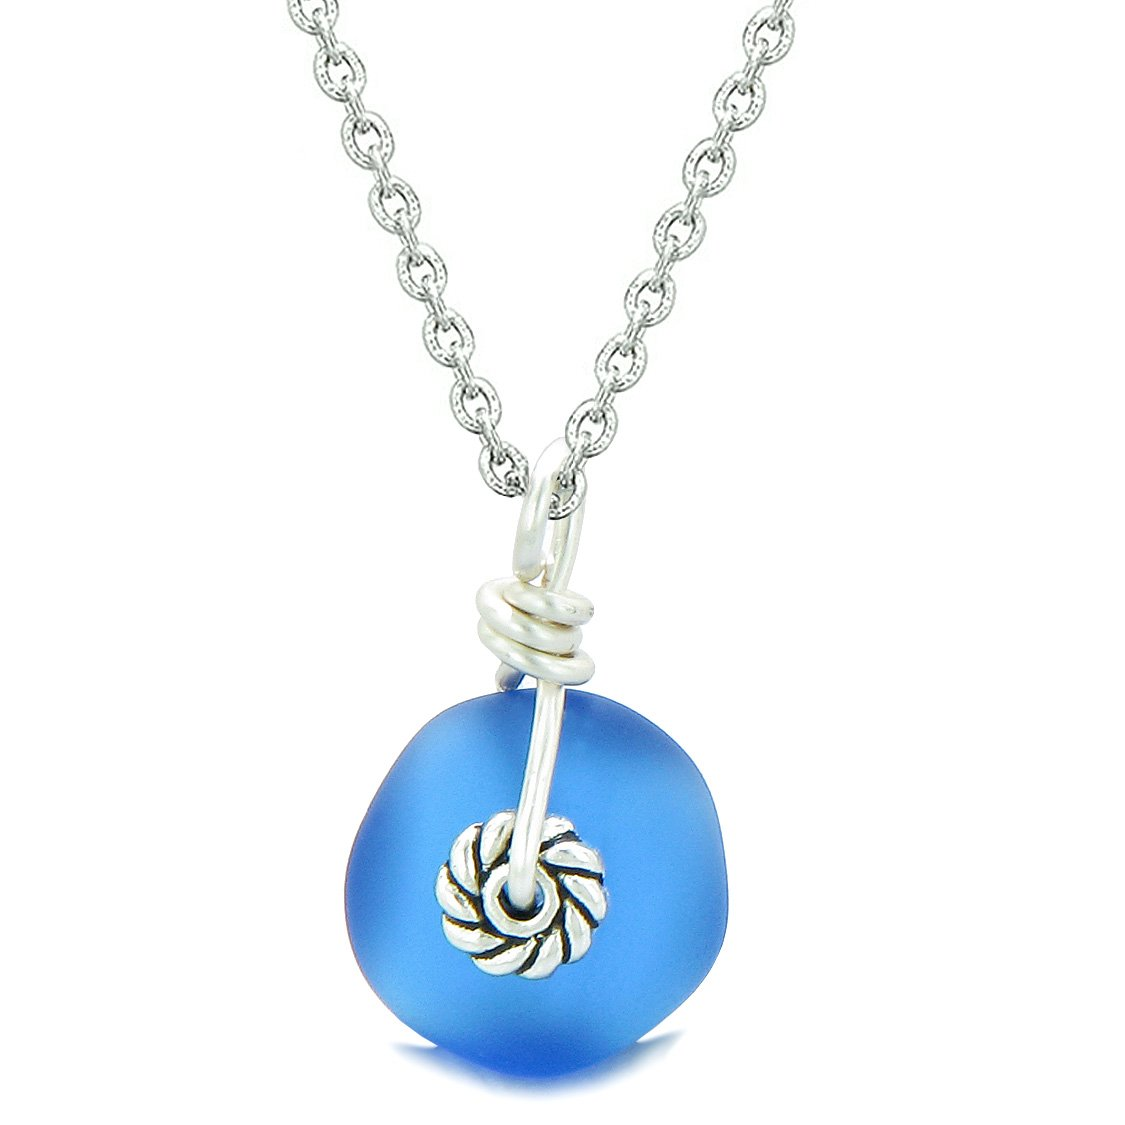 Twisted Twincies Small Cute Frosted Sea Glass Lucky Charms Handcrafted Ocean Blue 22 Inch Necklace